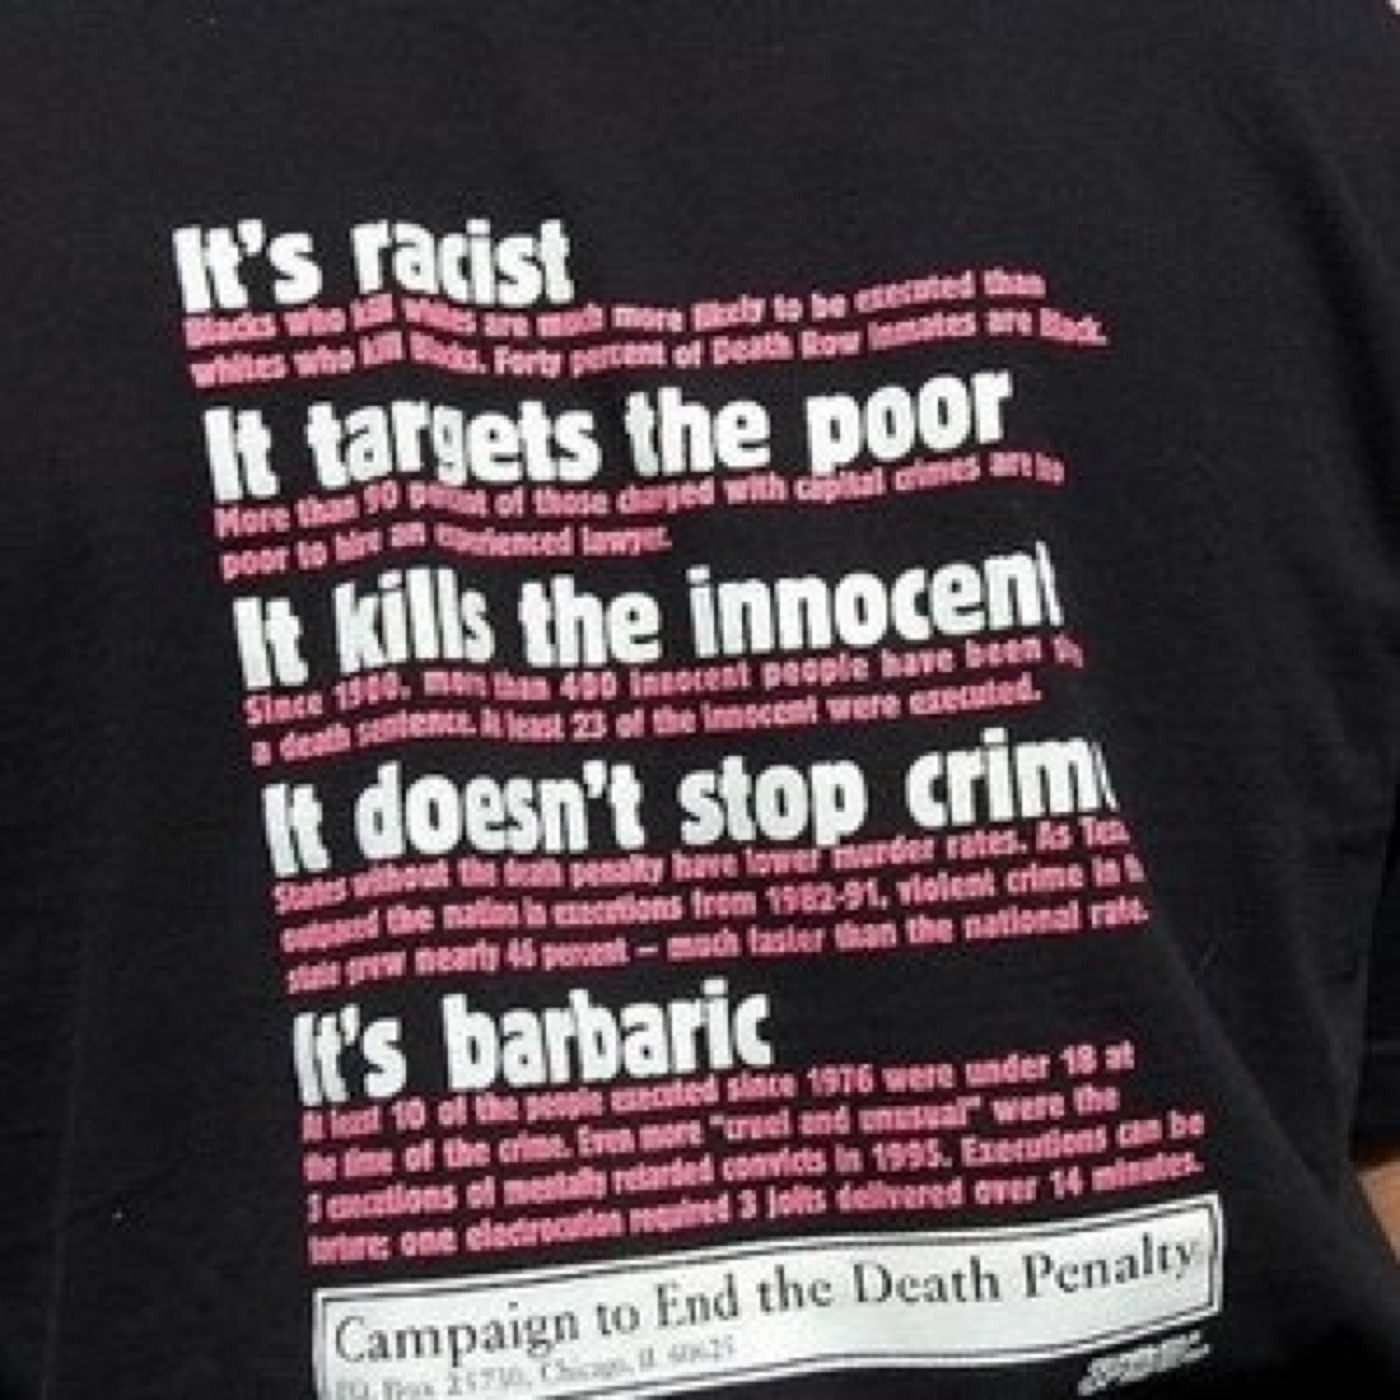 (2014/05/19) Bad in principle and in practice (Death Penalty) (Repost)